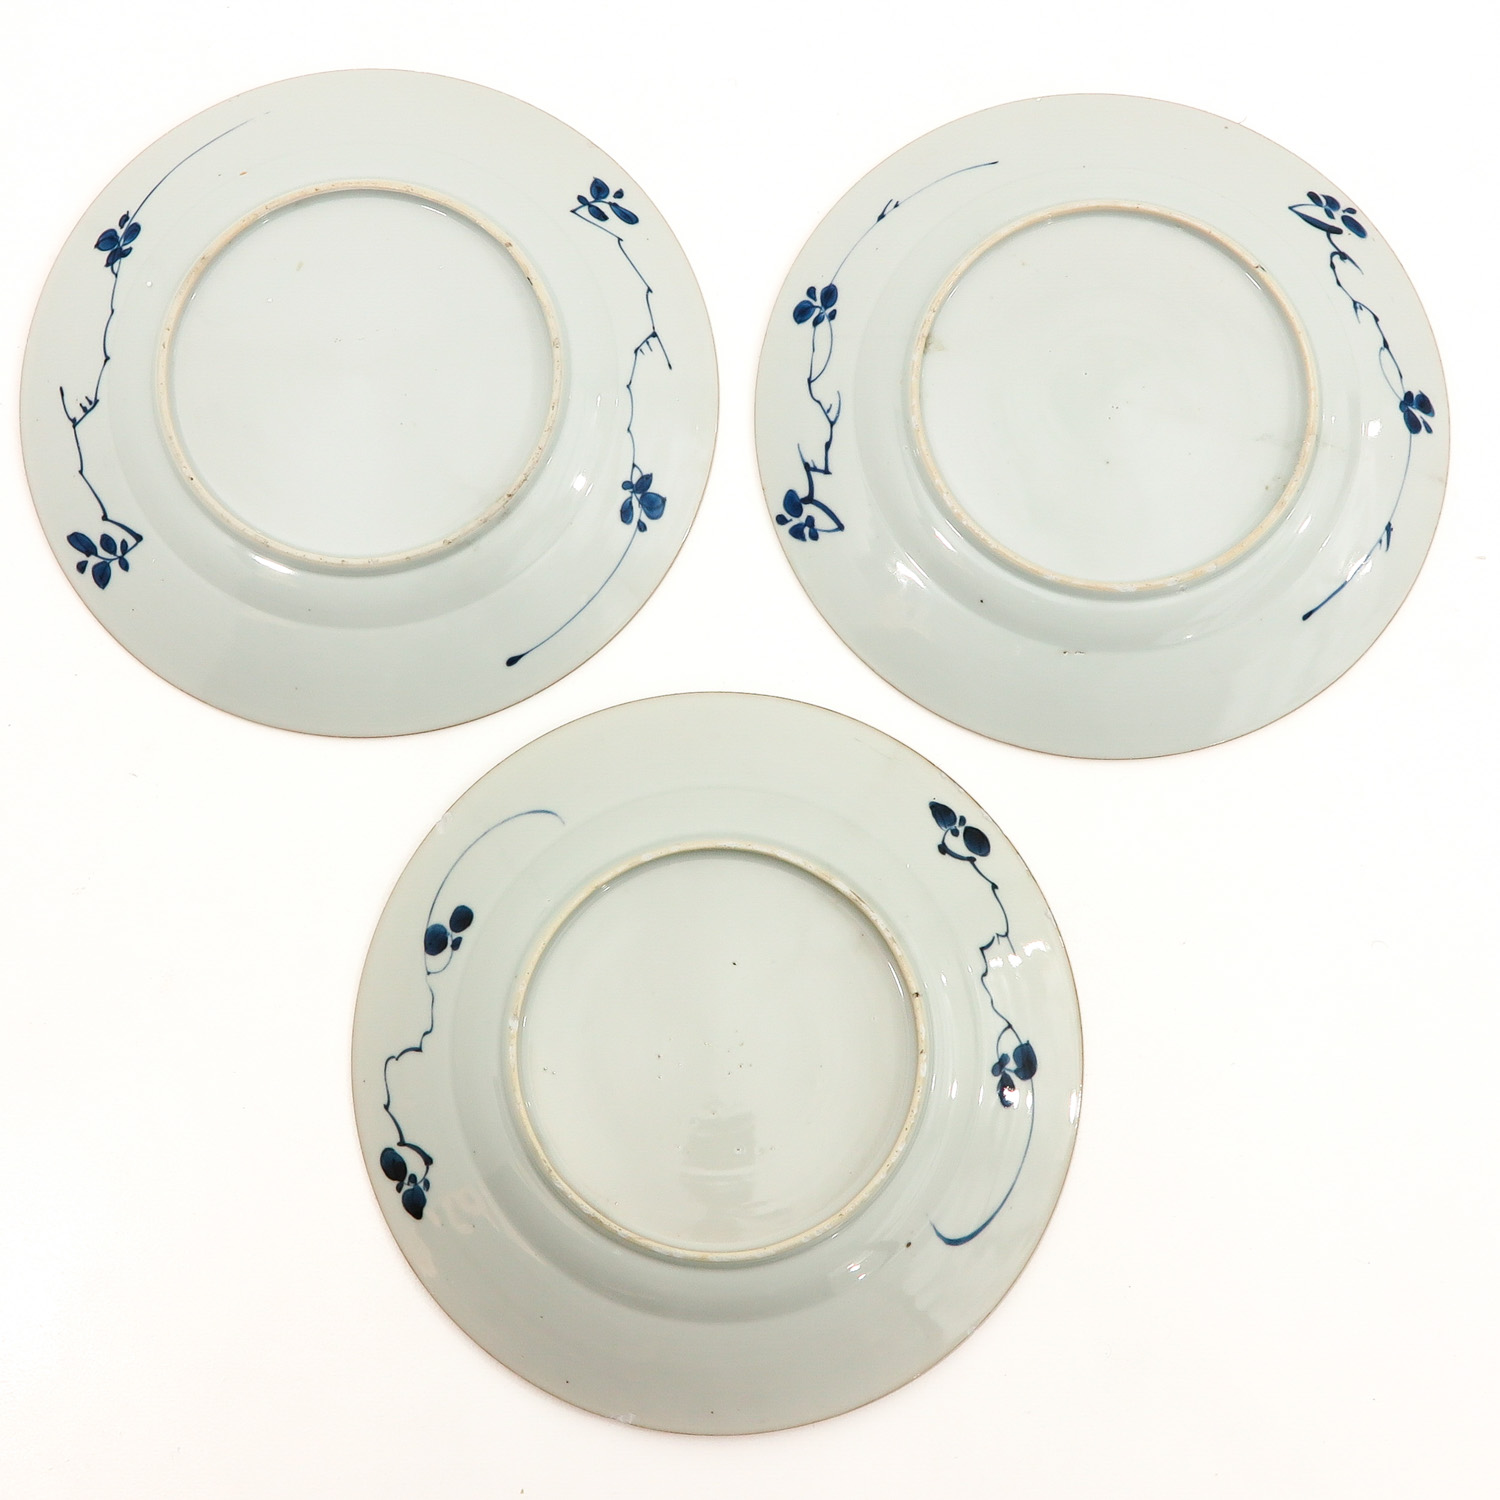 A Series of 5 Blue and White Plates - Image 4 of 10